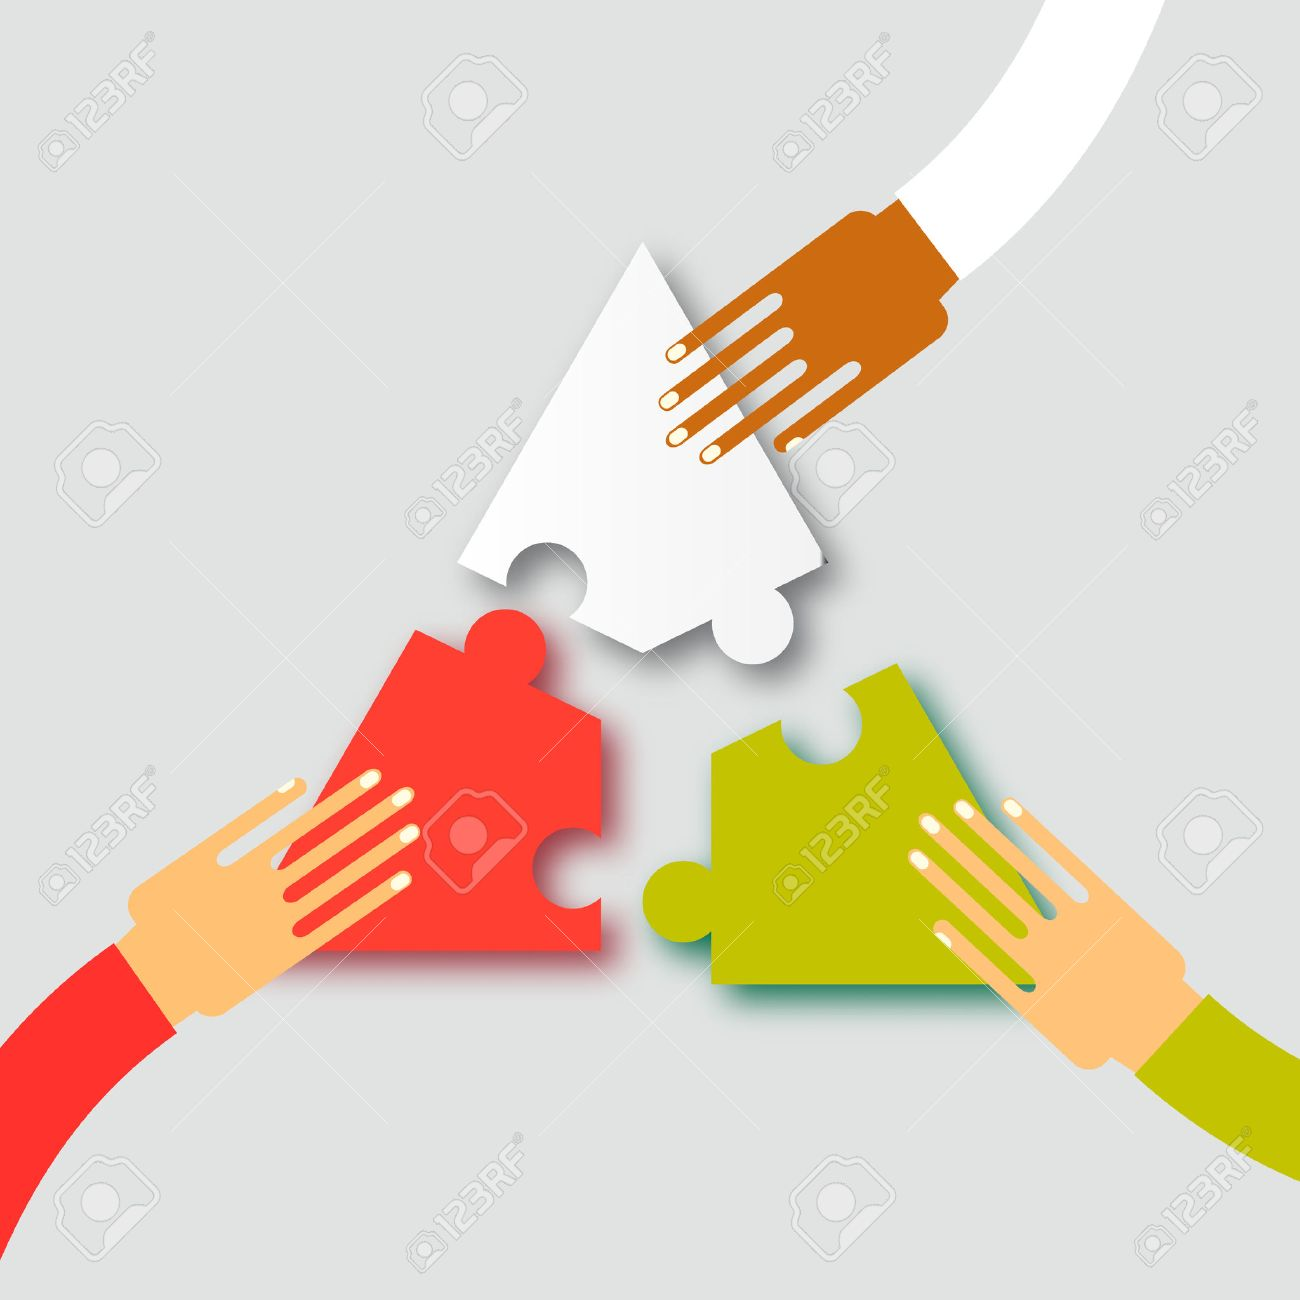 Three hands together team work. Hands putting puzzle pieces. Teamwork and bussiness concept. Hands of different colors, cultural and ethnic diversity. Vector illustration - 53256749